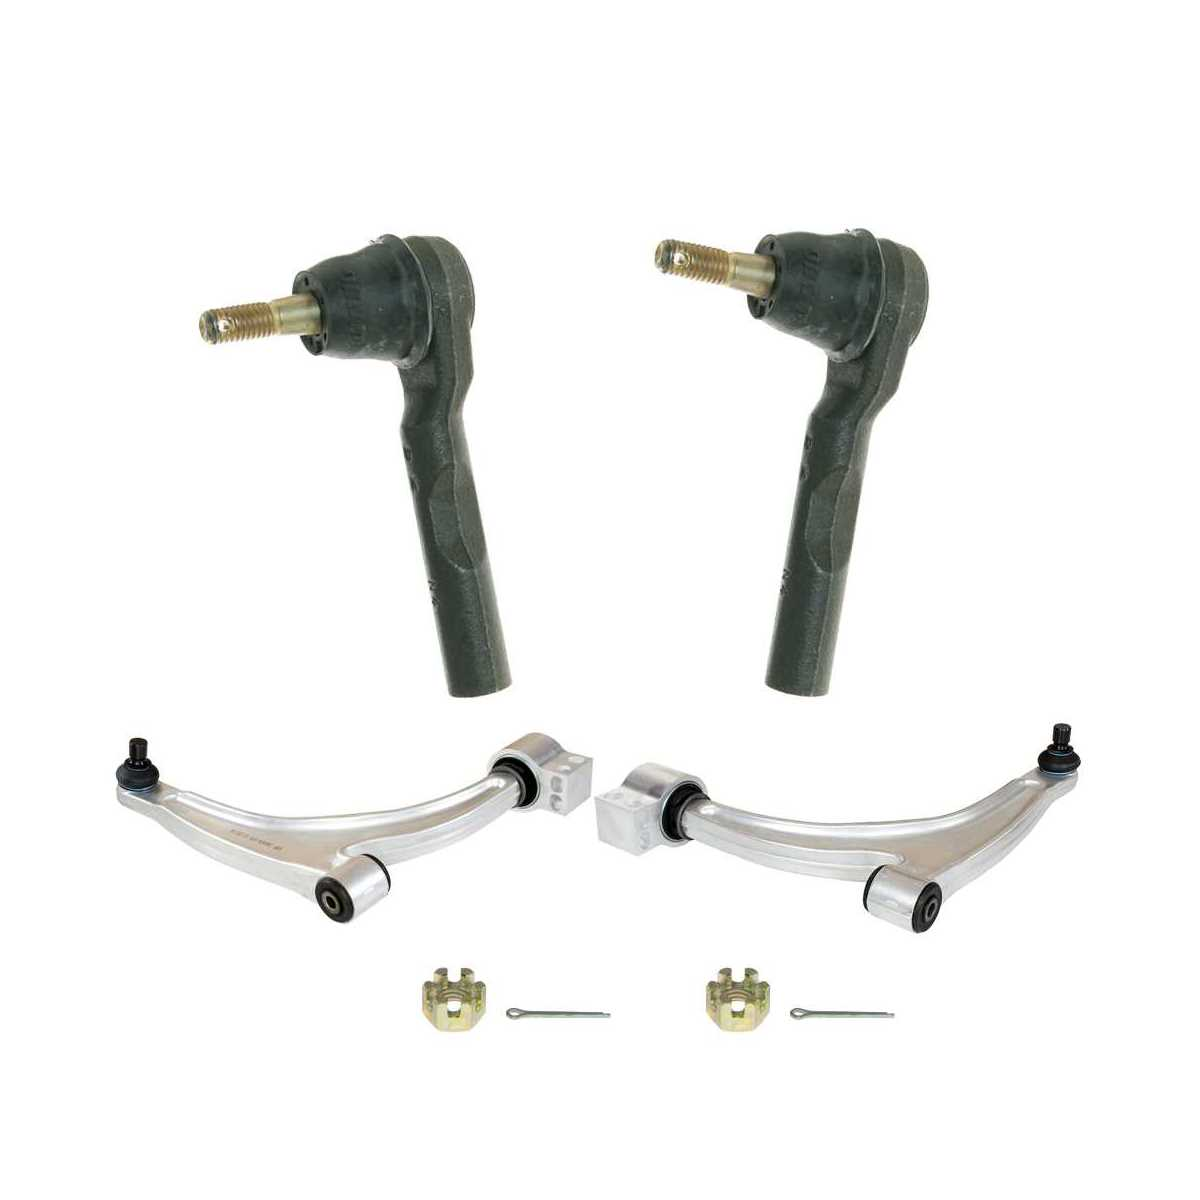 Auto Shack SUSPKG2115 Set of 2 Lower Control Arms and 2 Outer Tie Rods